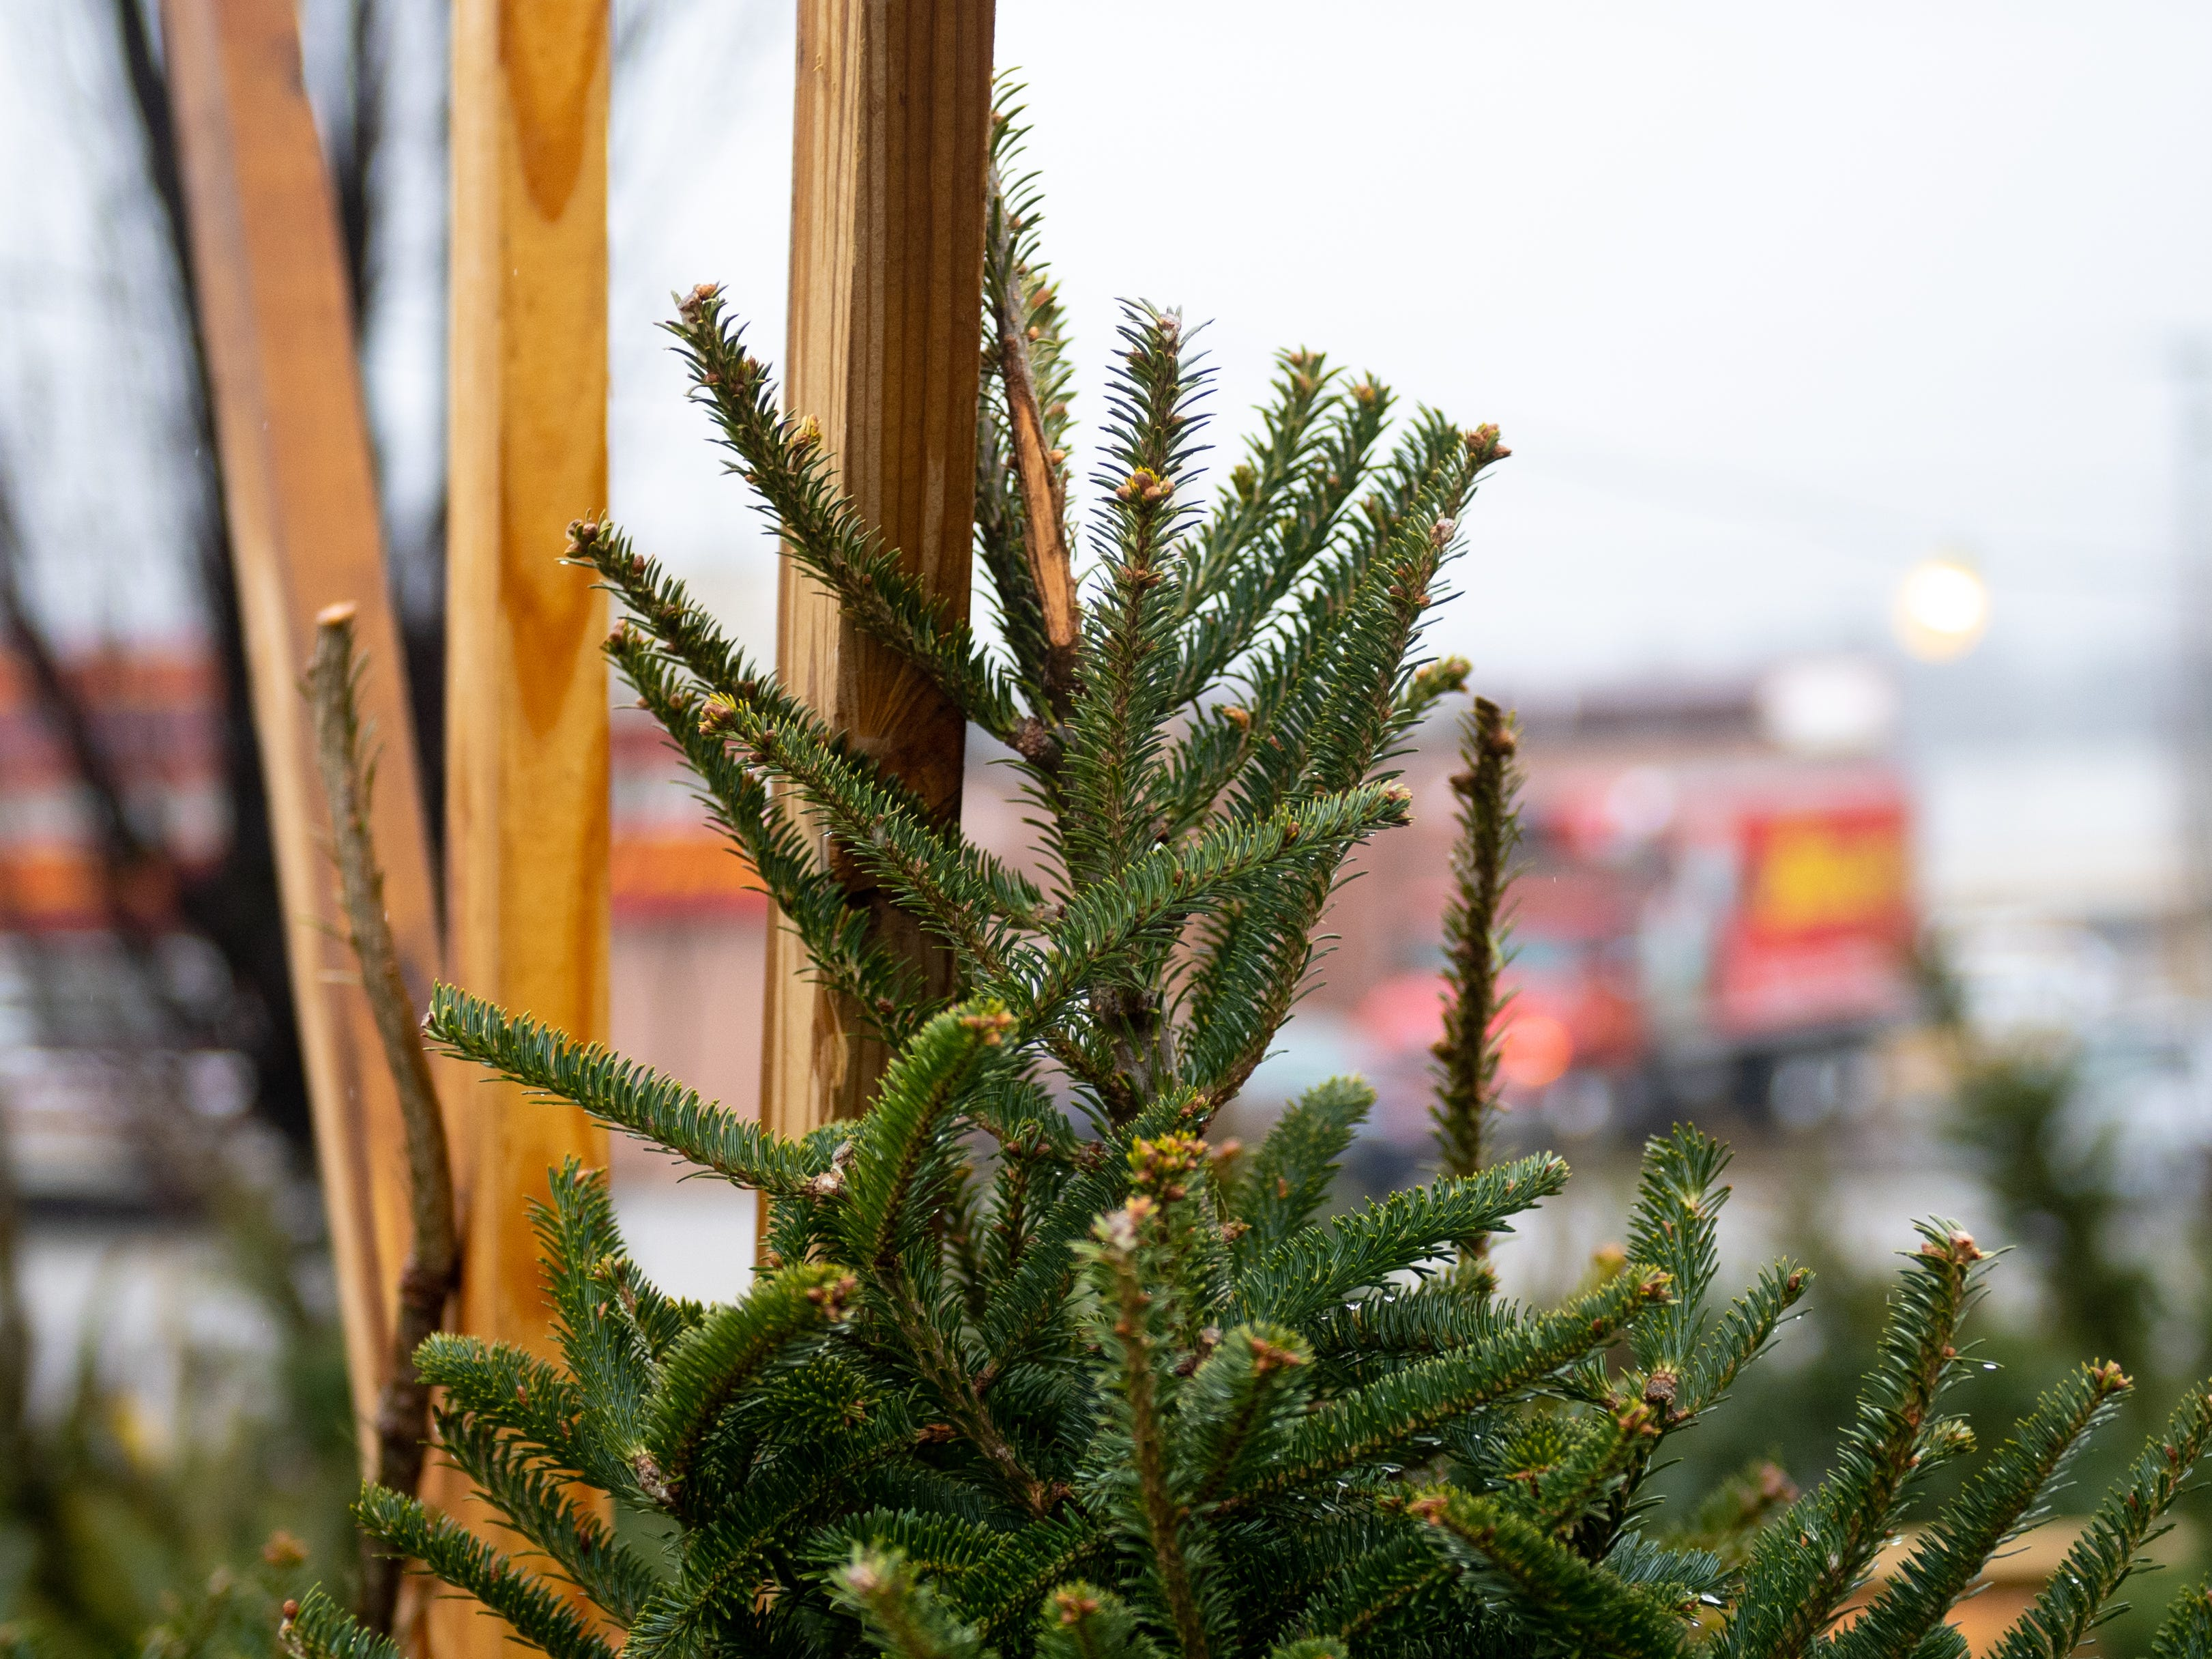 According to Glenn Olsen, the trees in the lot are fresher than ever due to the constant rain York's been getting, Saturday, December 15, 2018.